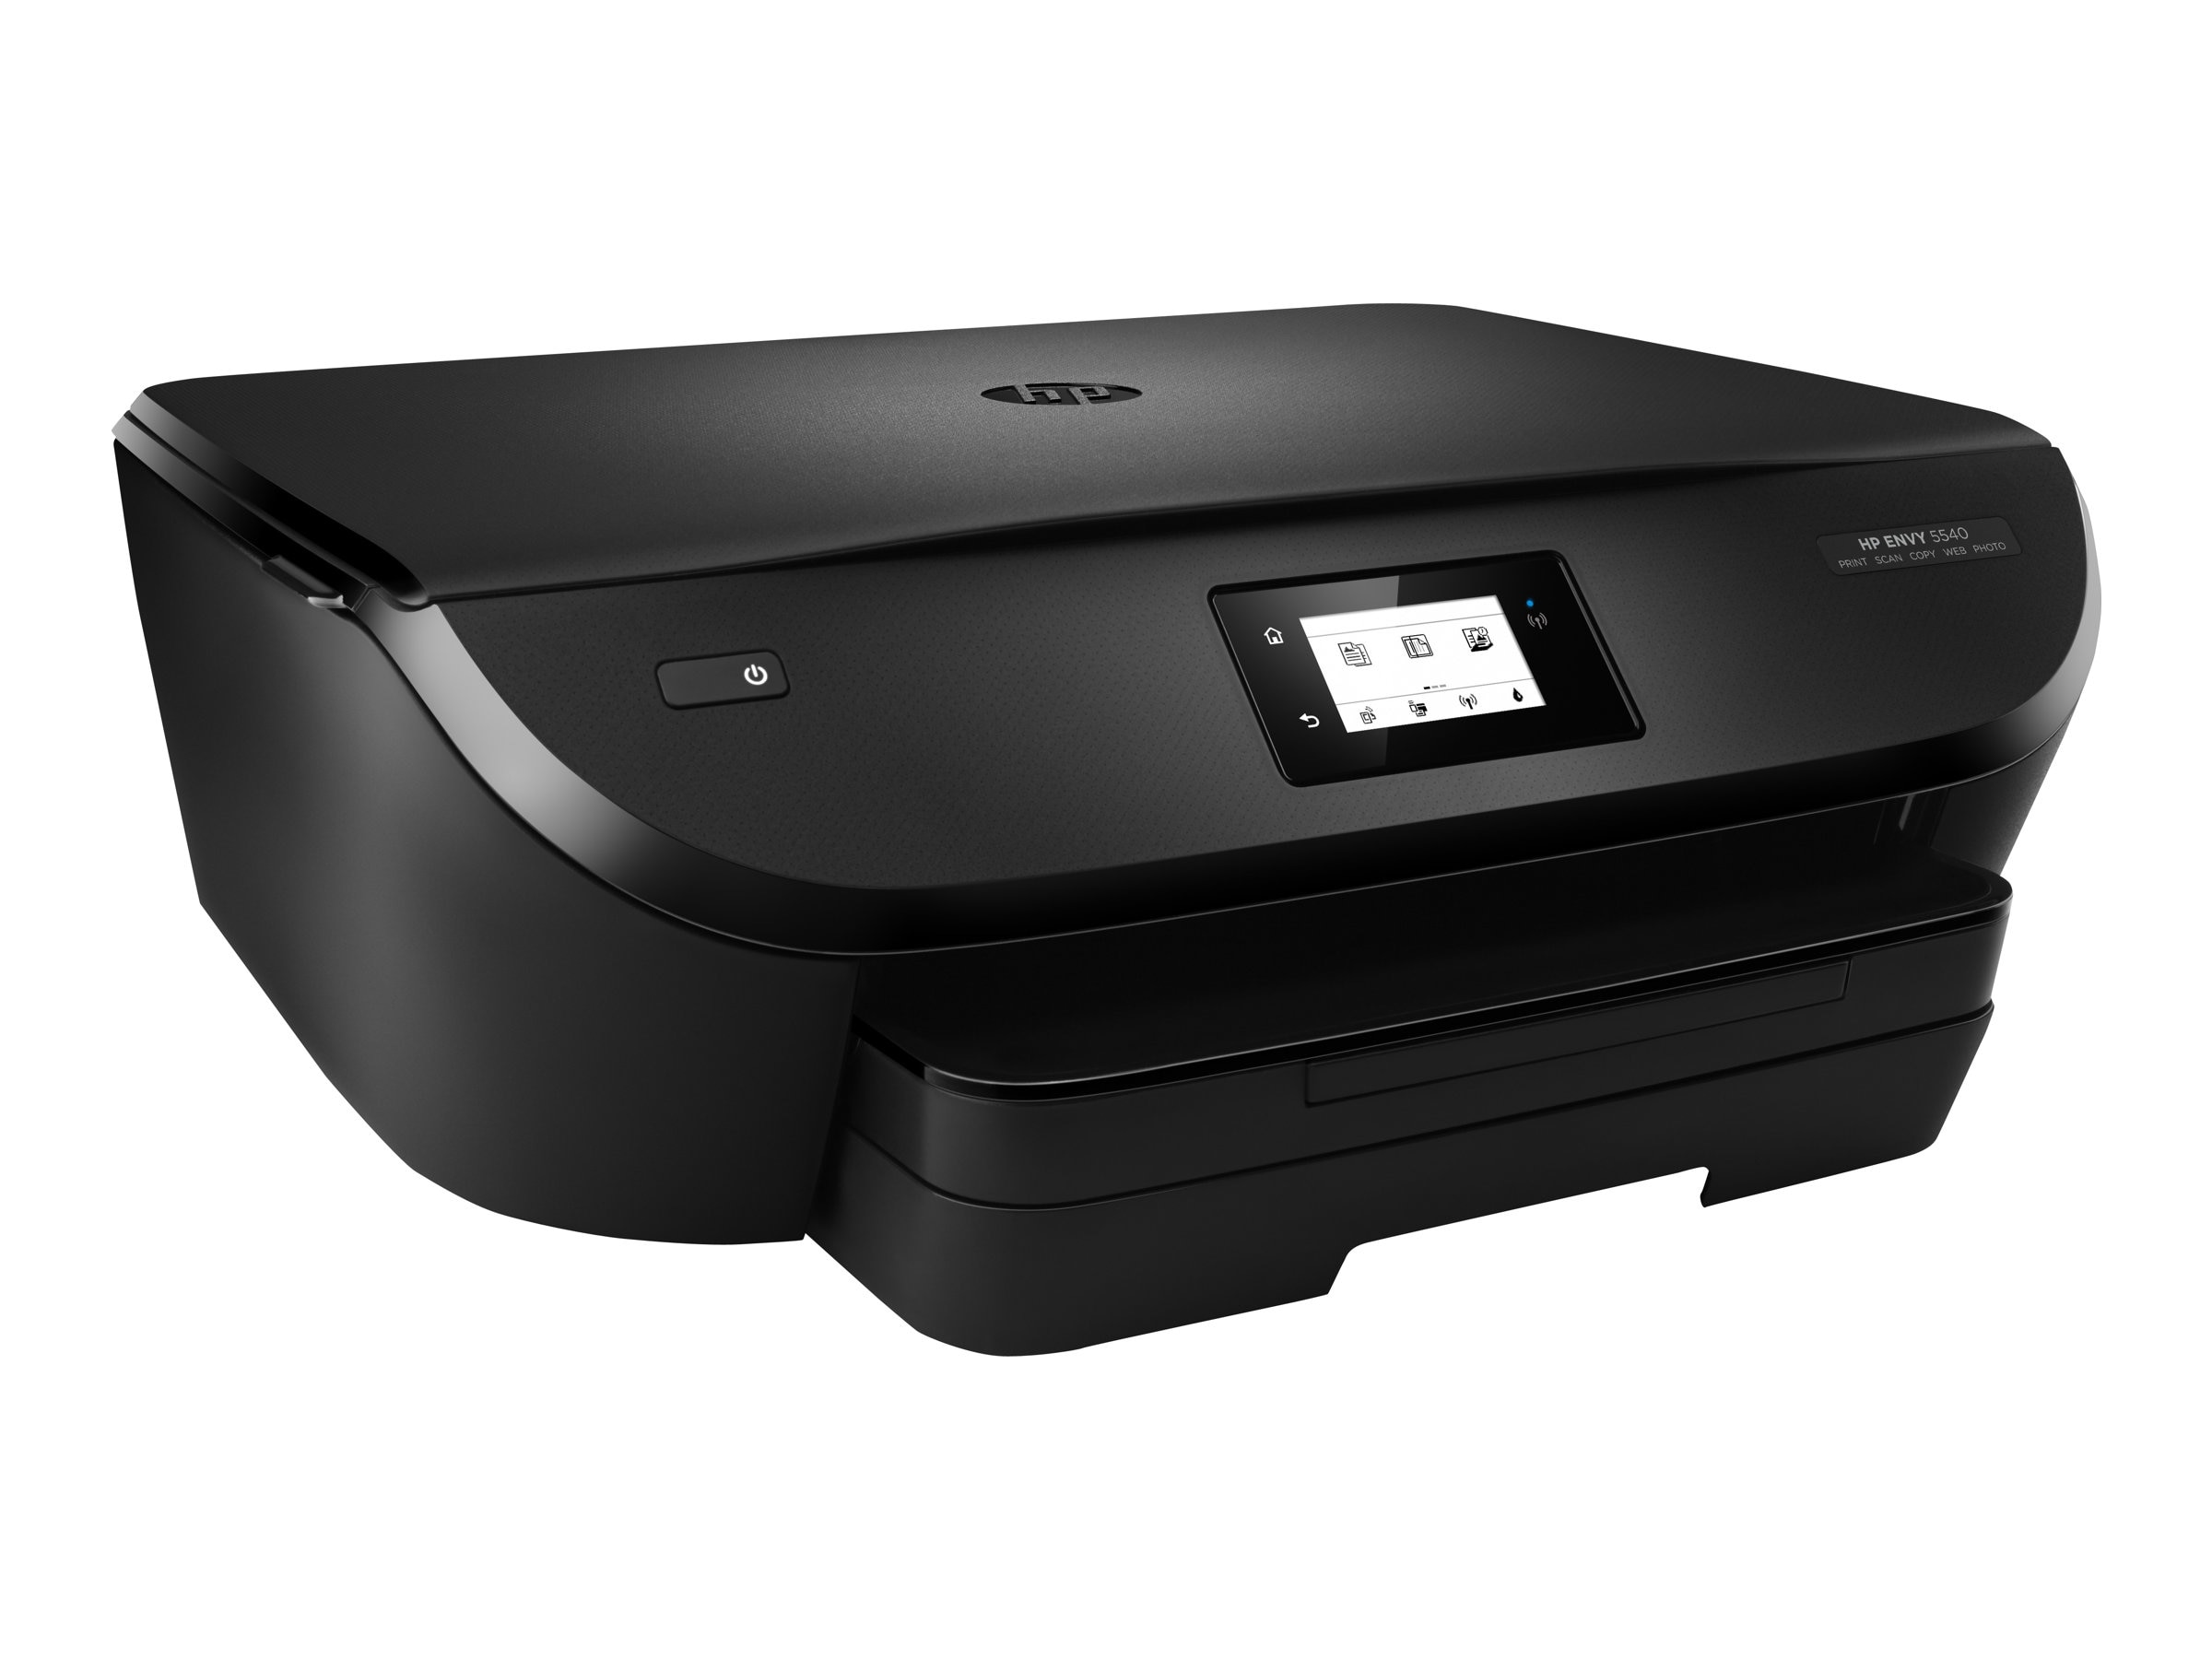 HP ENVY 5540 All-in-One Printer ($129.99-$60 IR = $69.99. Expires 8 31 2017), K7C85A#B1H